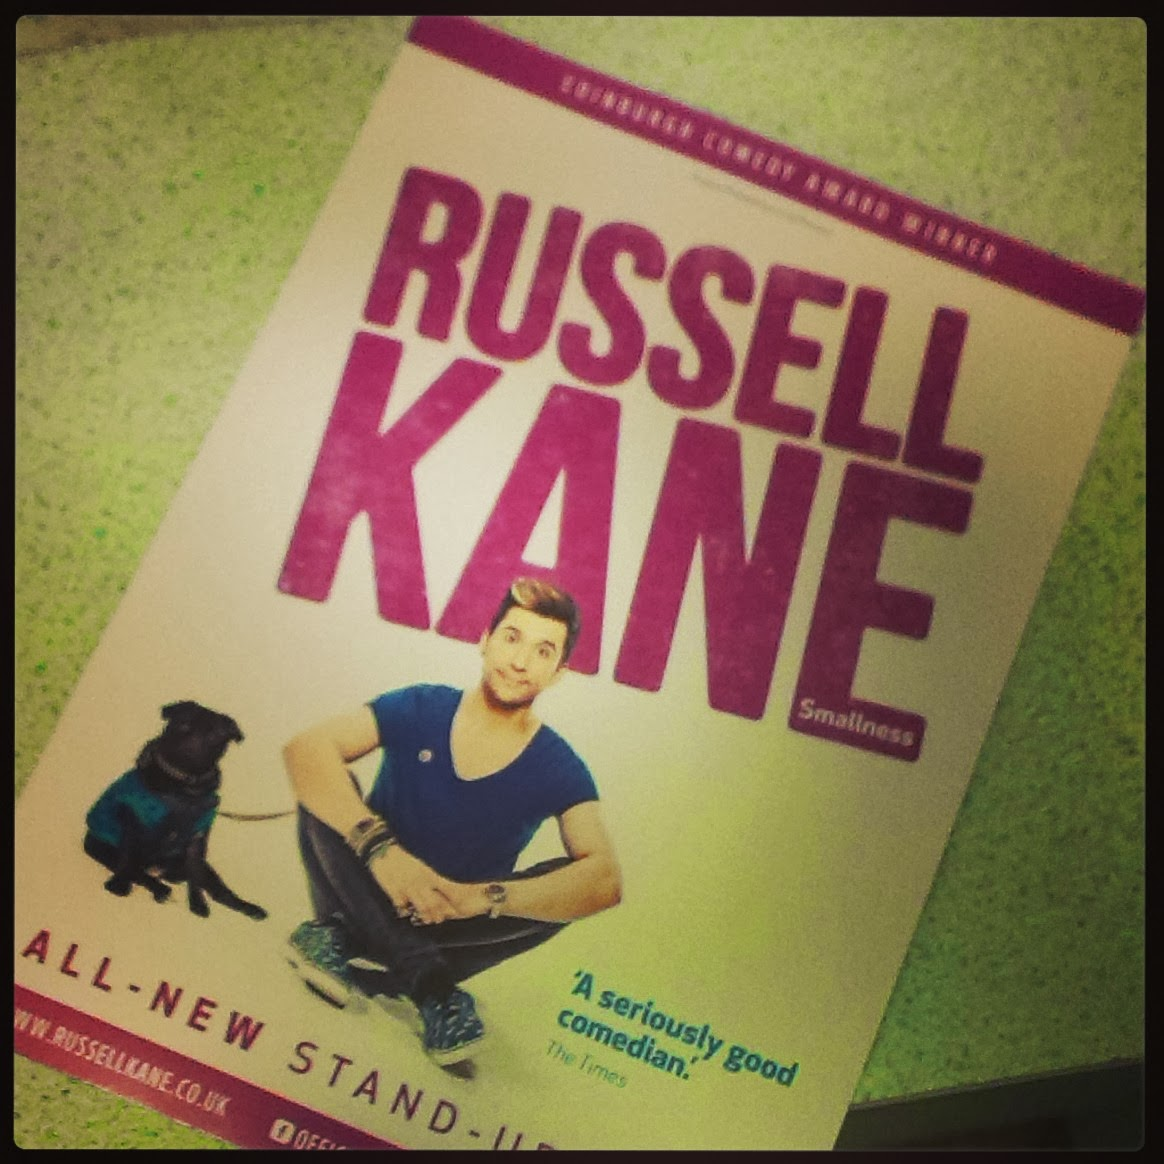 Russell Kane Smallness Tour Leaflet